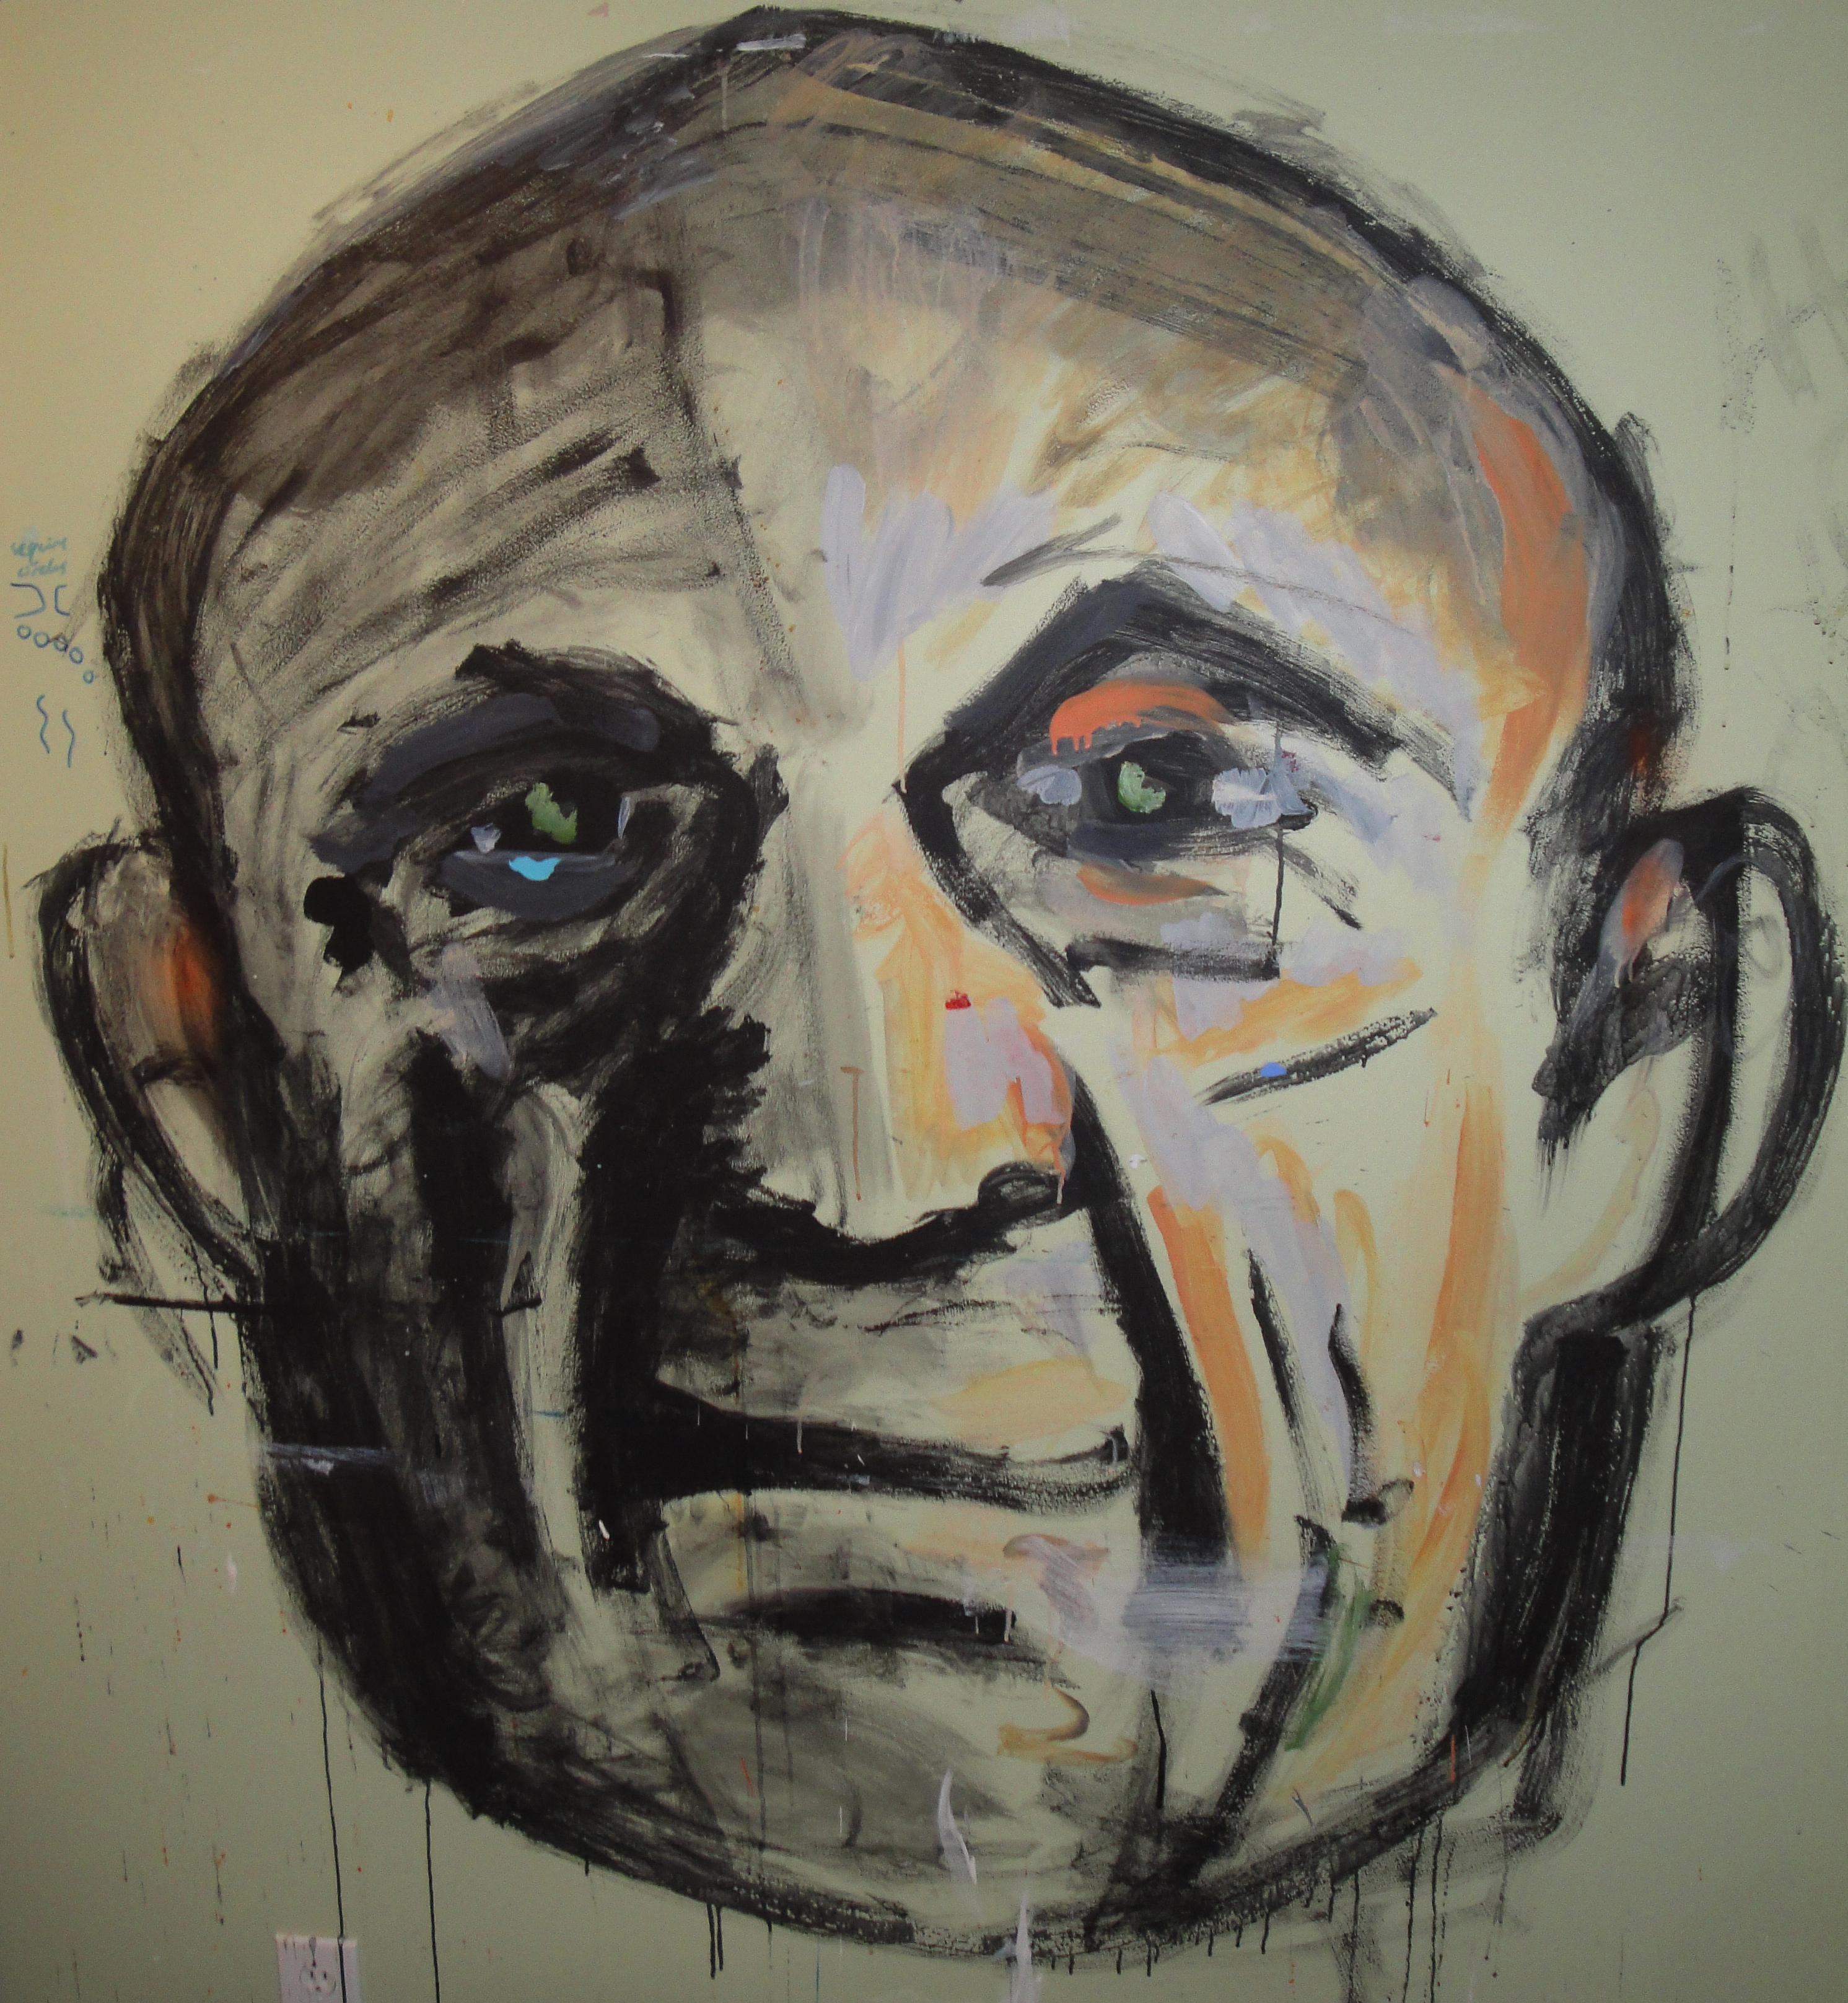 Picasso Cubist Faces Wall portrait of picasso